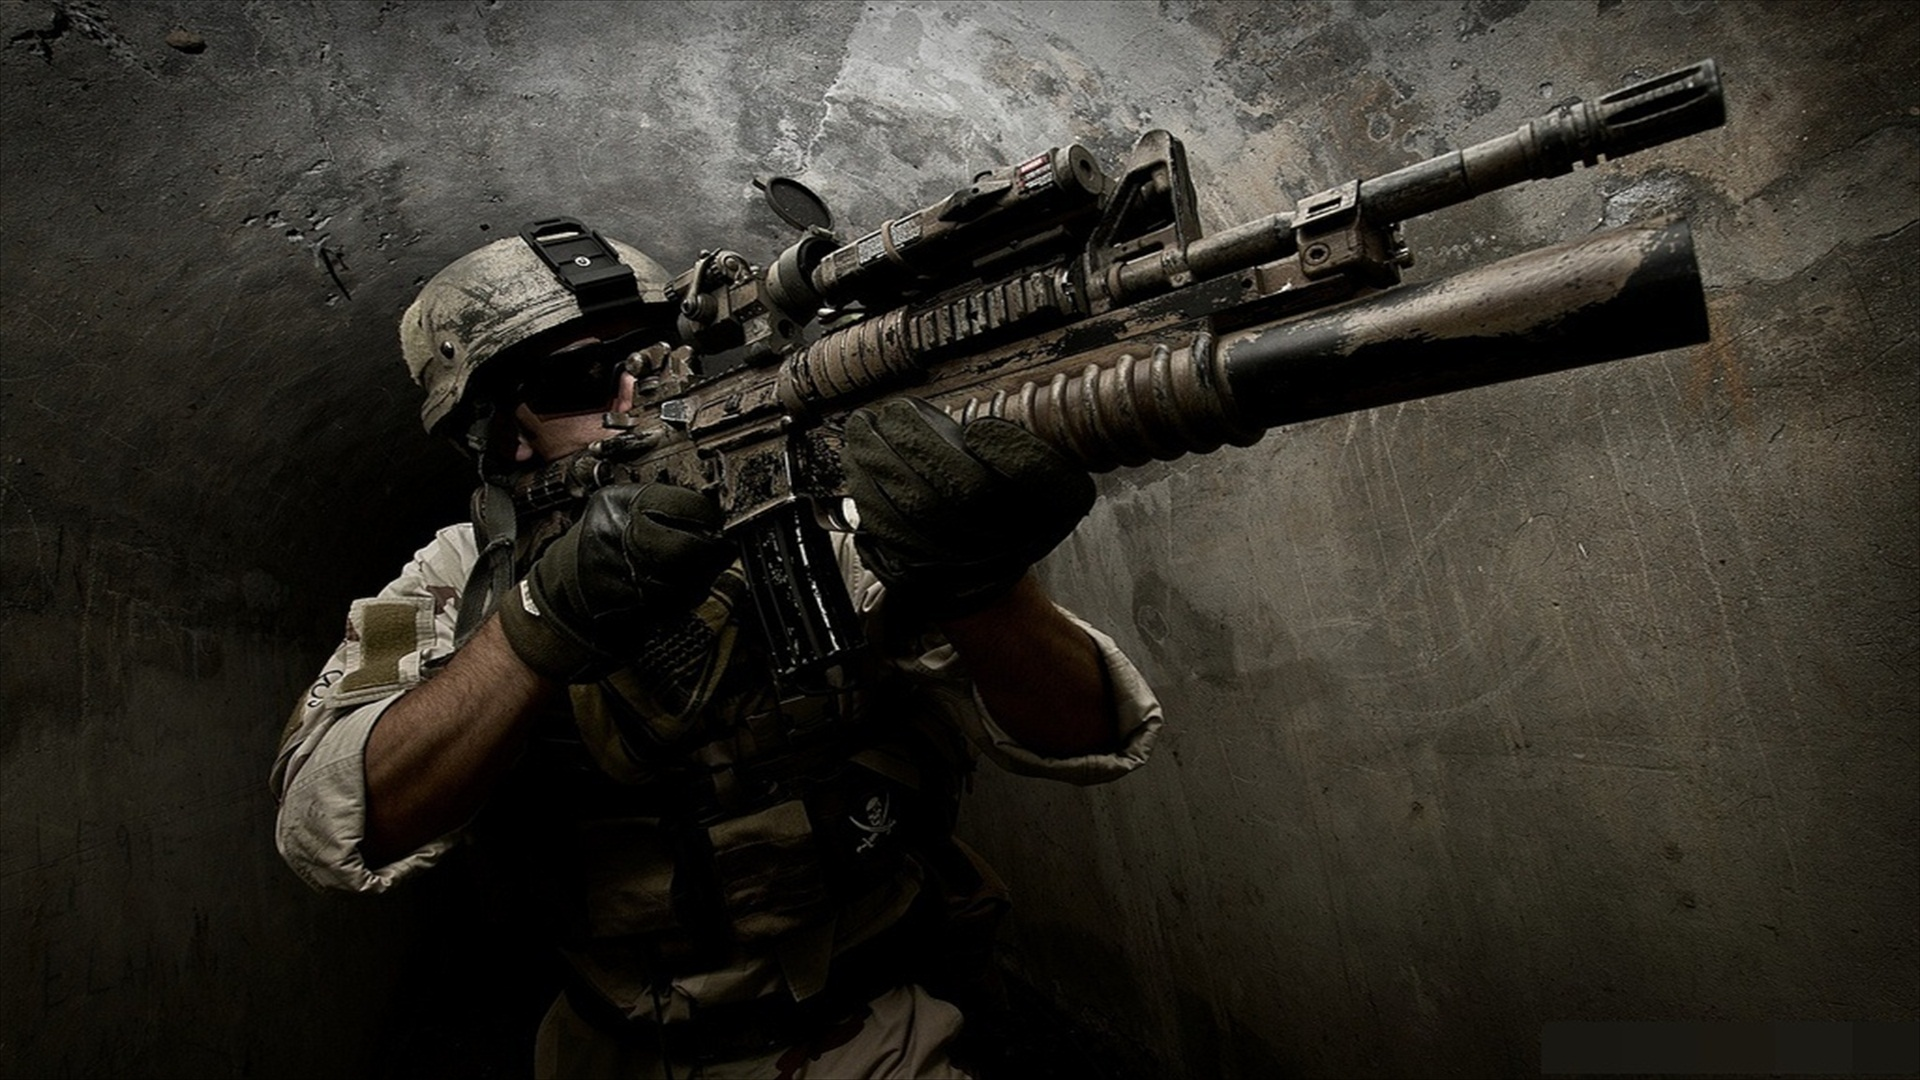 Love Wallpaper Of Army : Assault Rifle Full HD Wallpaper and Background Image 1920x1080 ID:141898